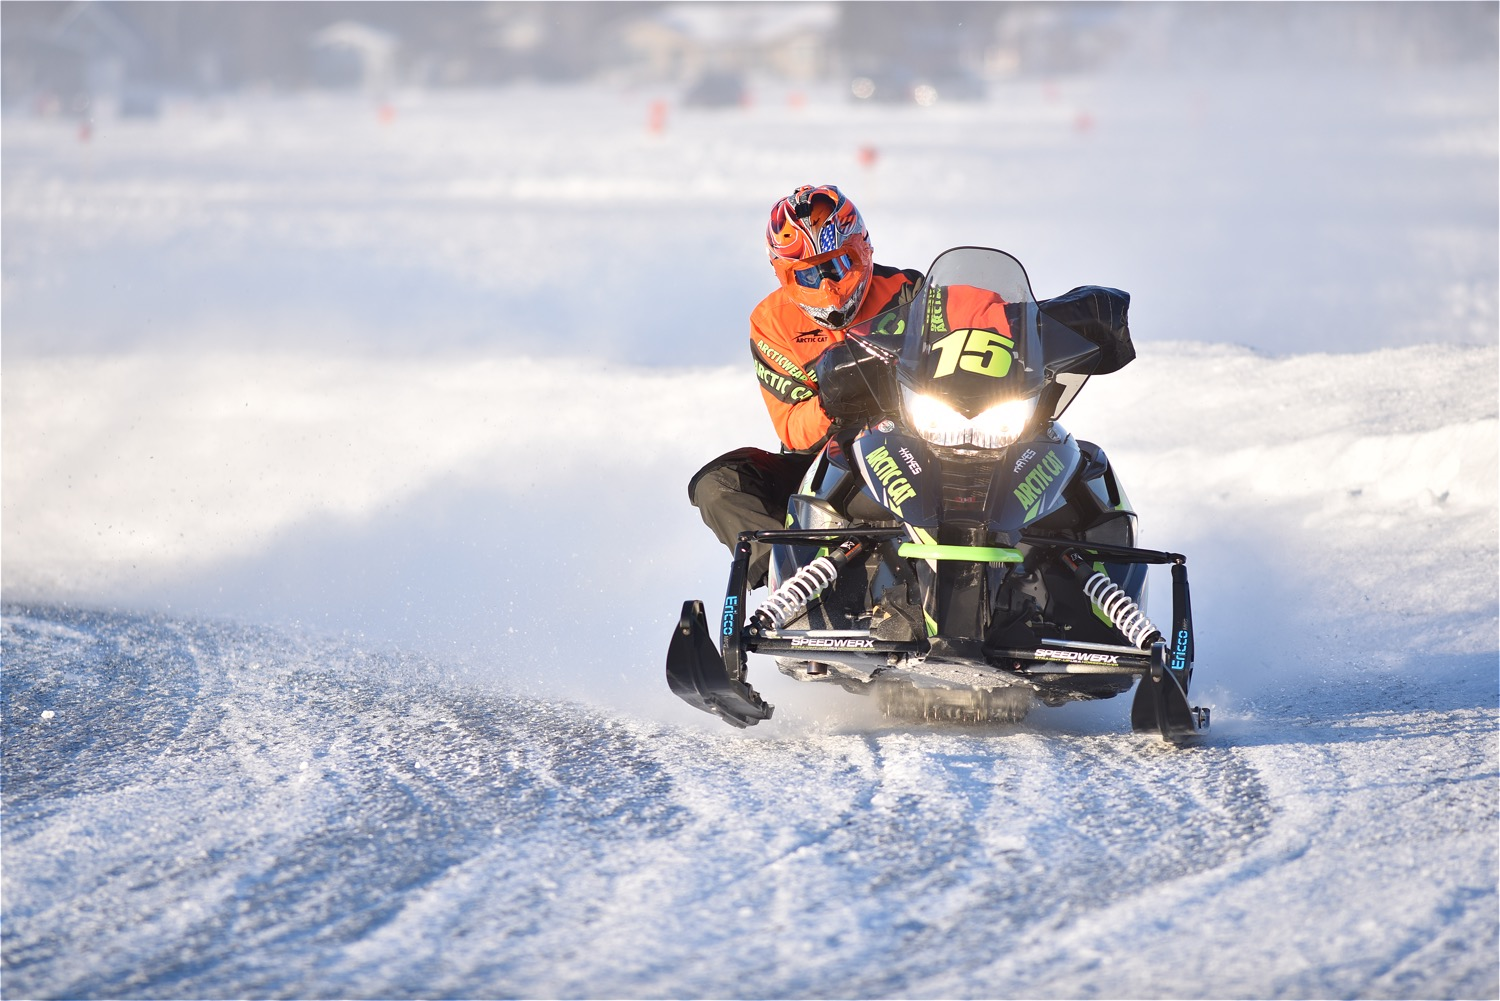 Team Arctic's Wes Selby won Pro Open and took 4th in Pro Stock at Pine Lake.